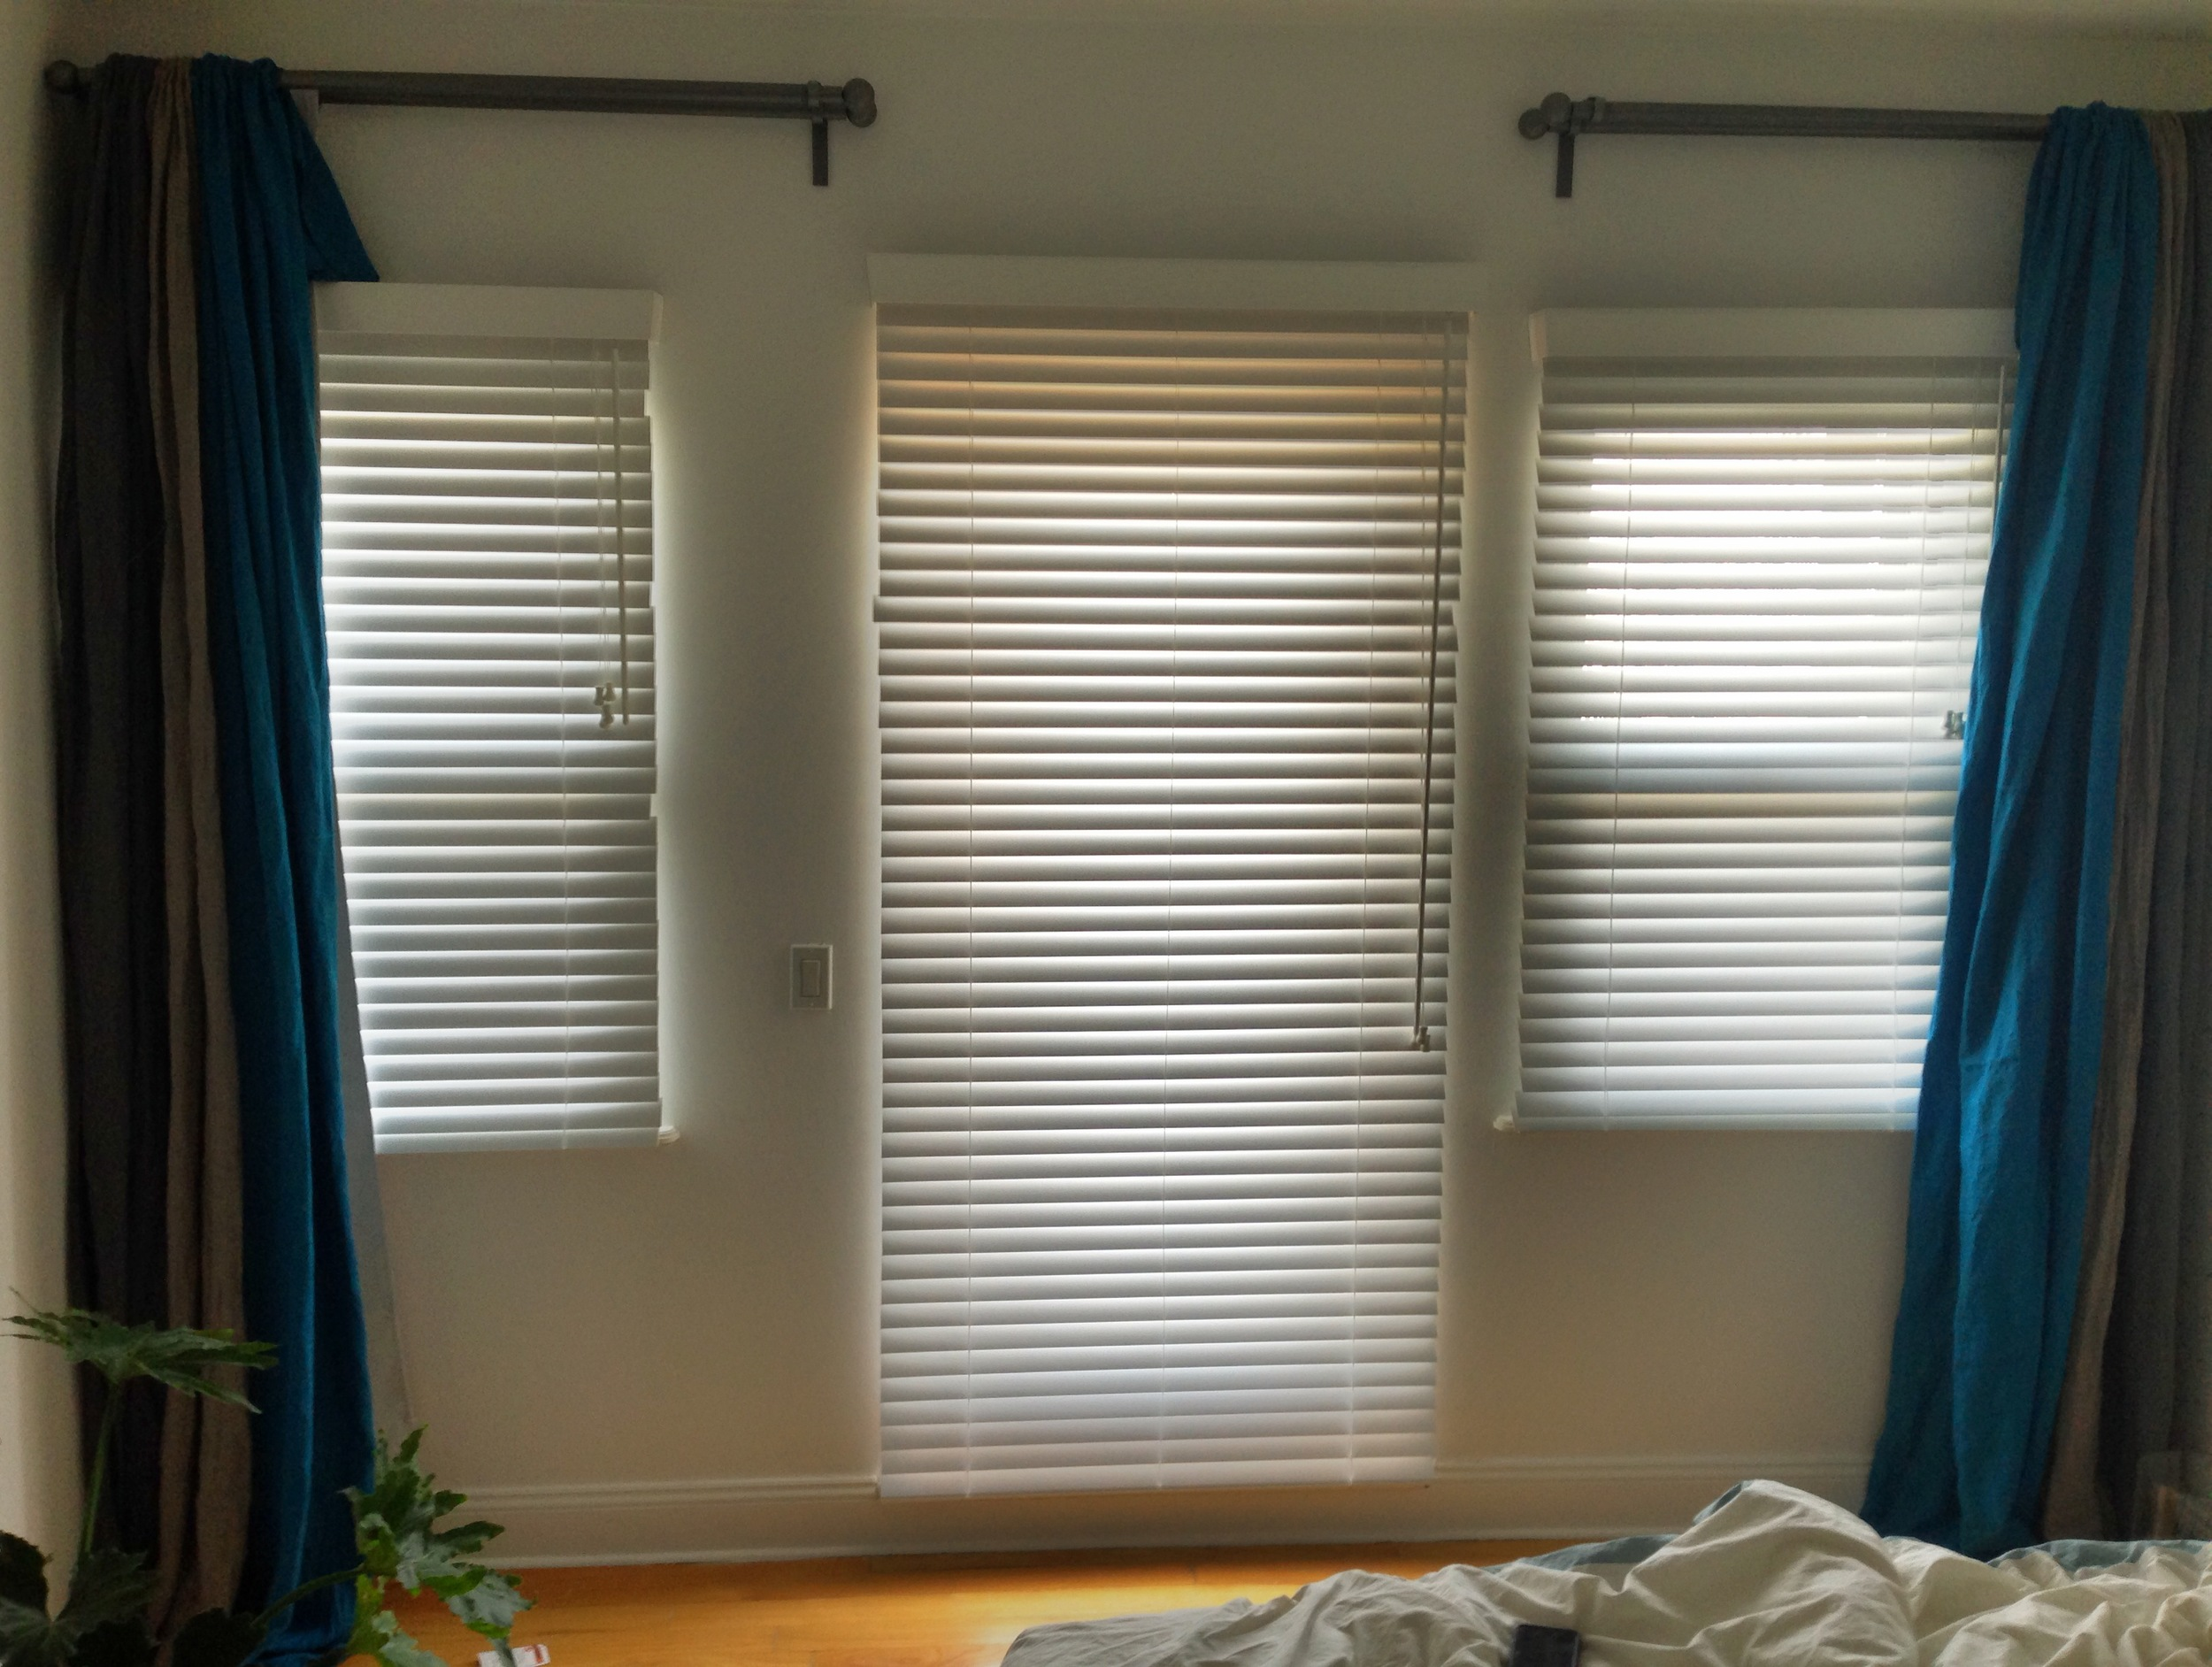 White Faux Wood blinds - Williamsburg, Brooklyn apartment